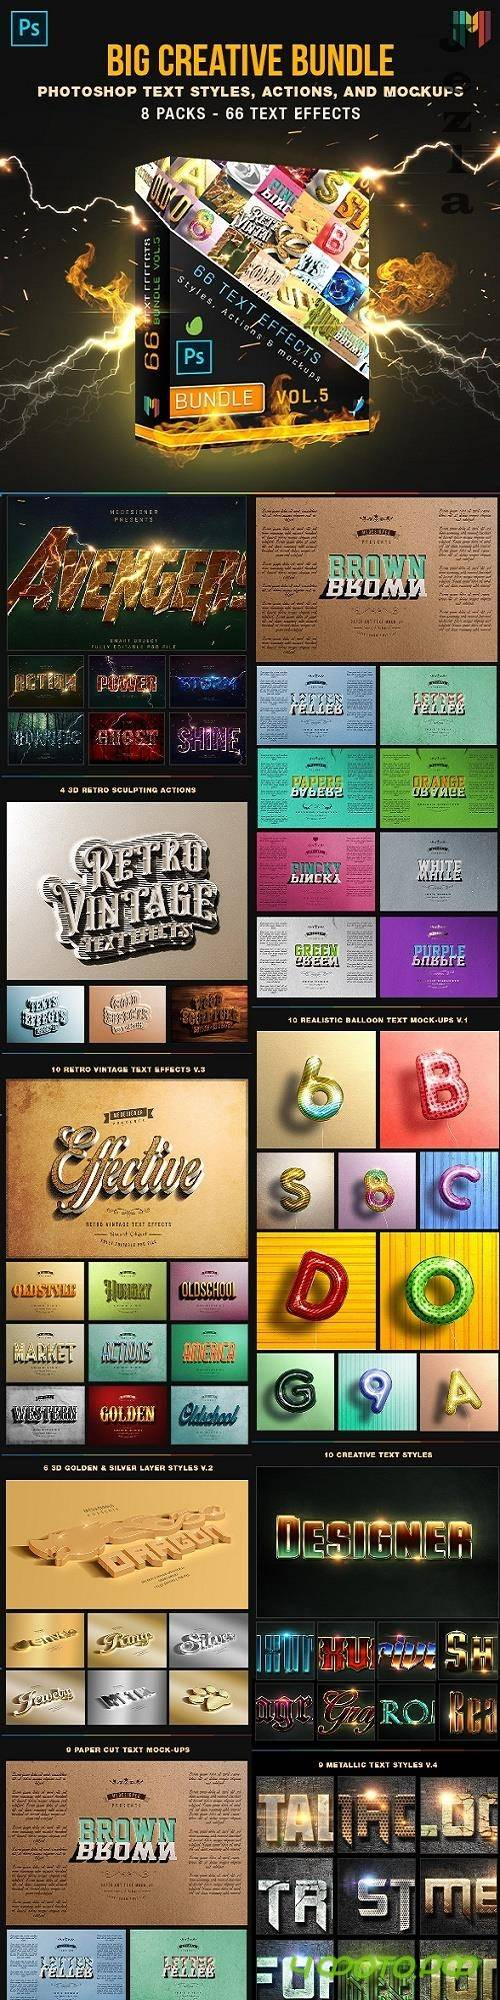 66 Creative Text Effects Bundle 5 - 26168423